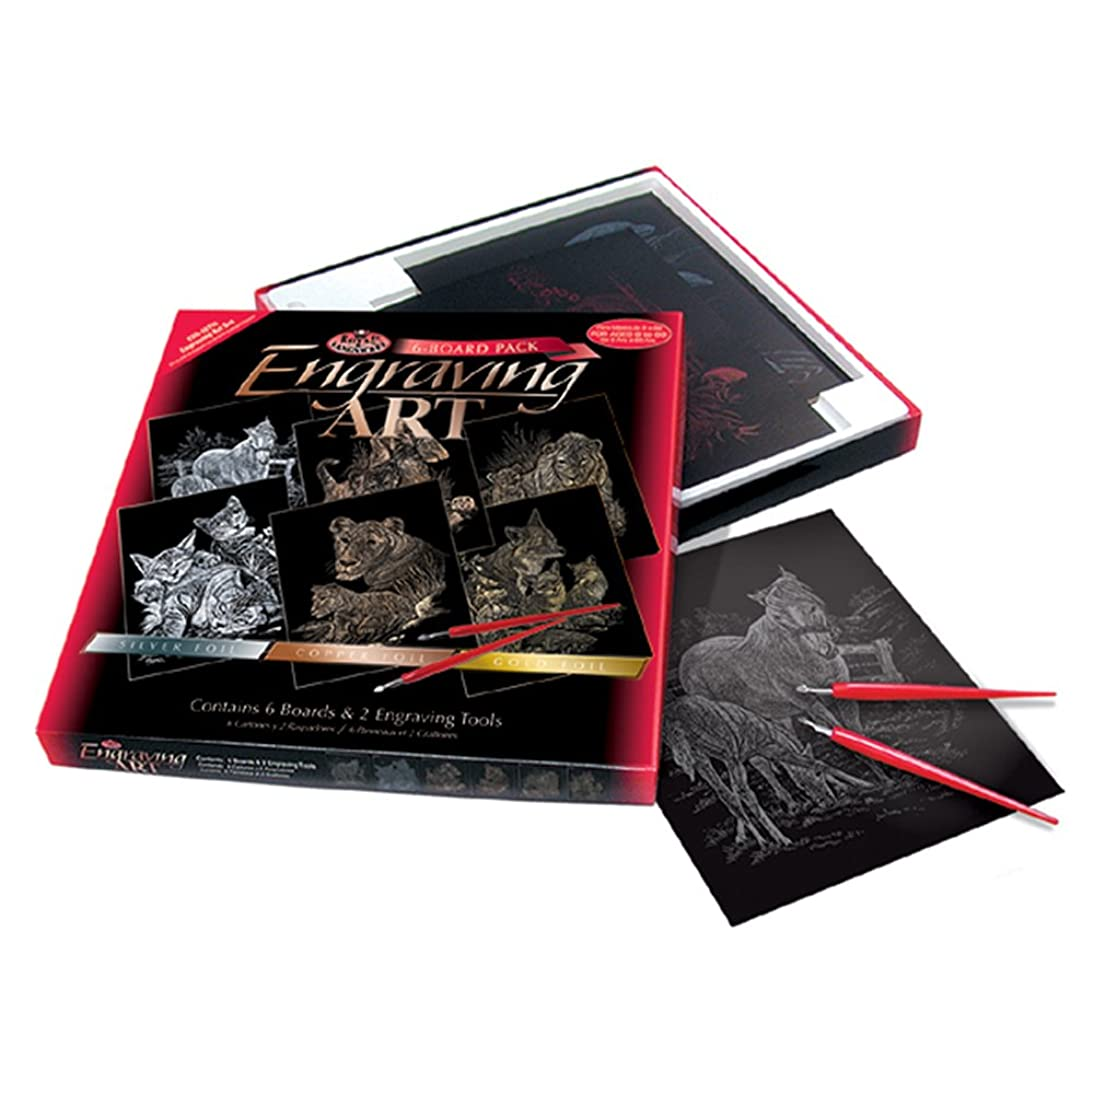 ROYAL BRUSH Langnickel 8-Inch by 10-Inch Foil Engraving Art Kit Value Pack, Tabby